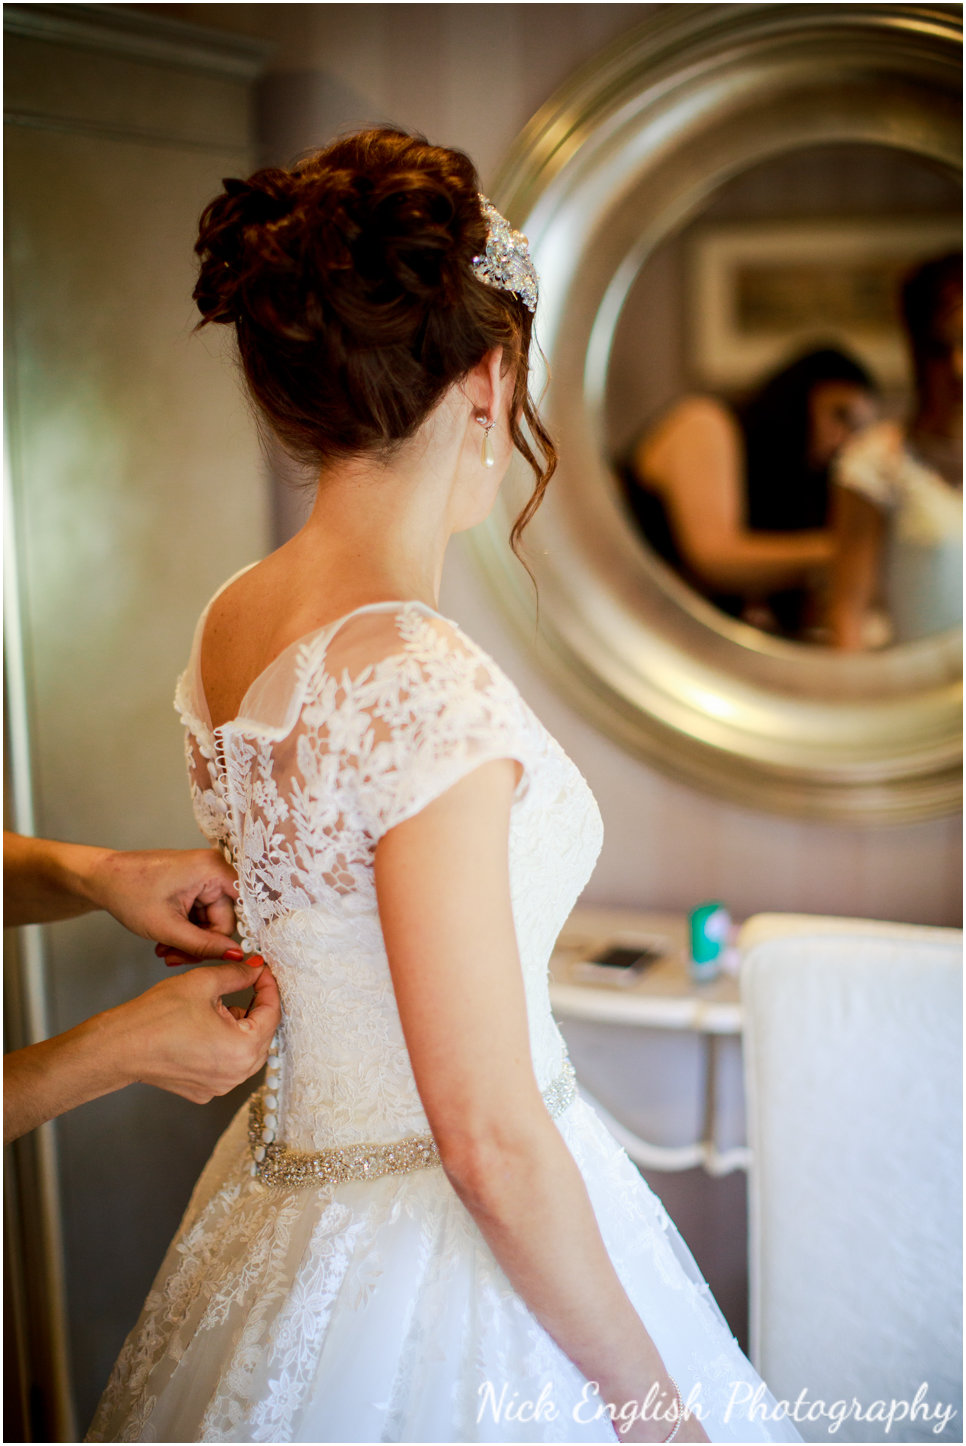 Jamie-Lee, the bride, getting into her wedding dress in The Lodge at Eaves Hall